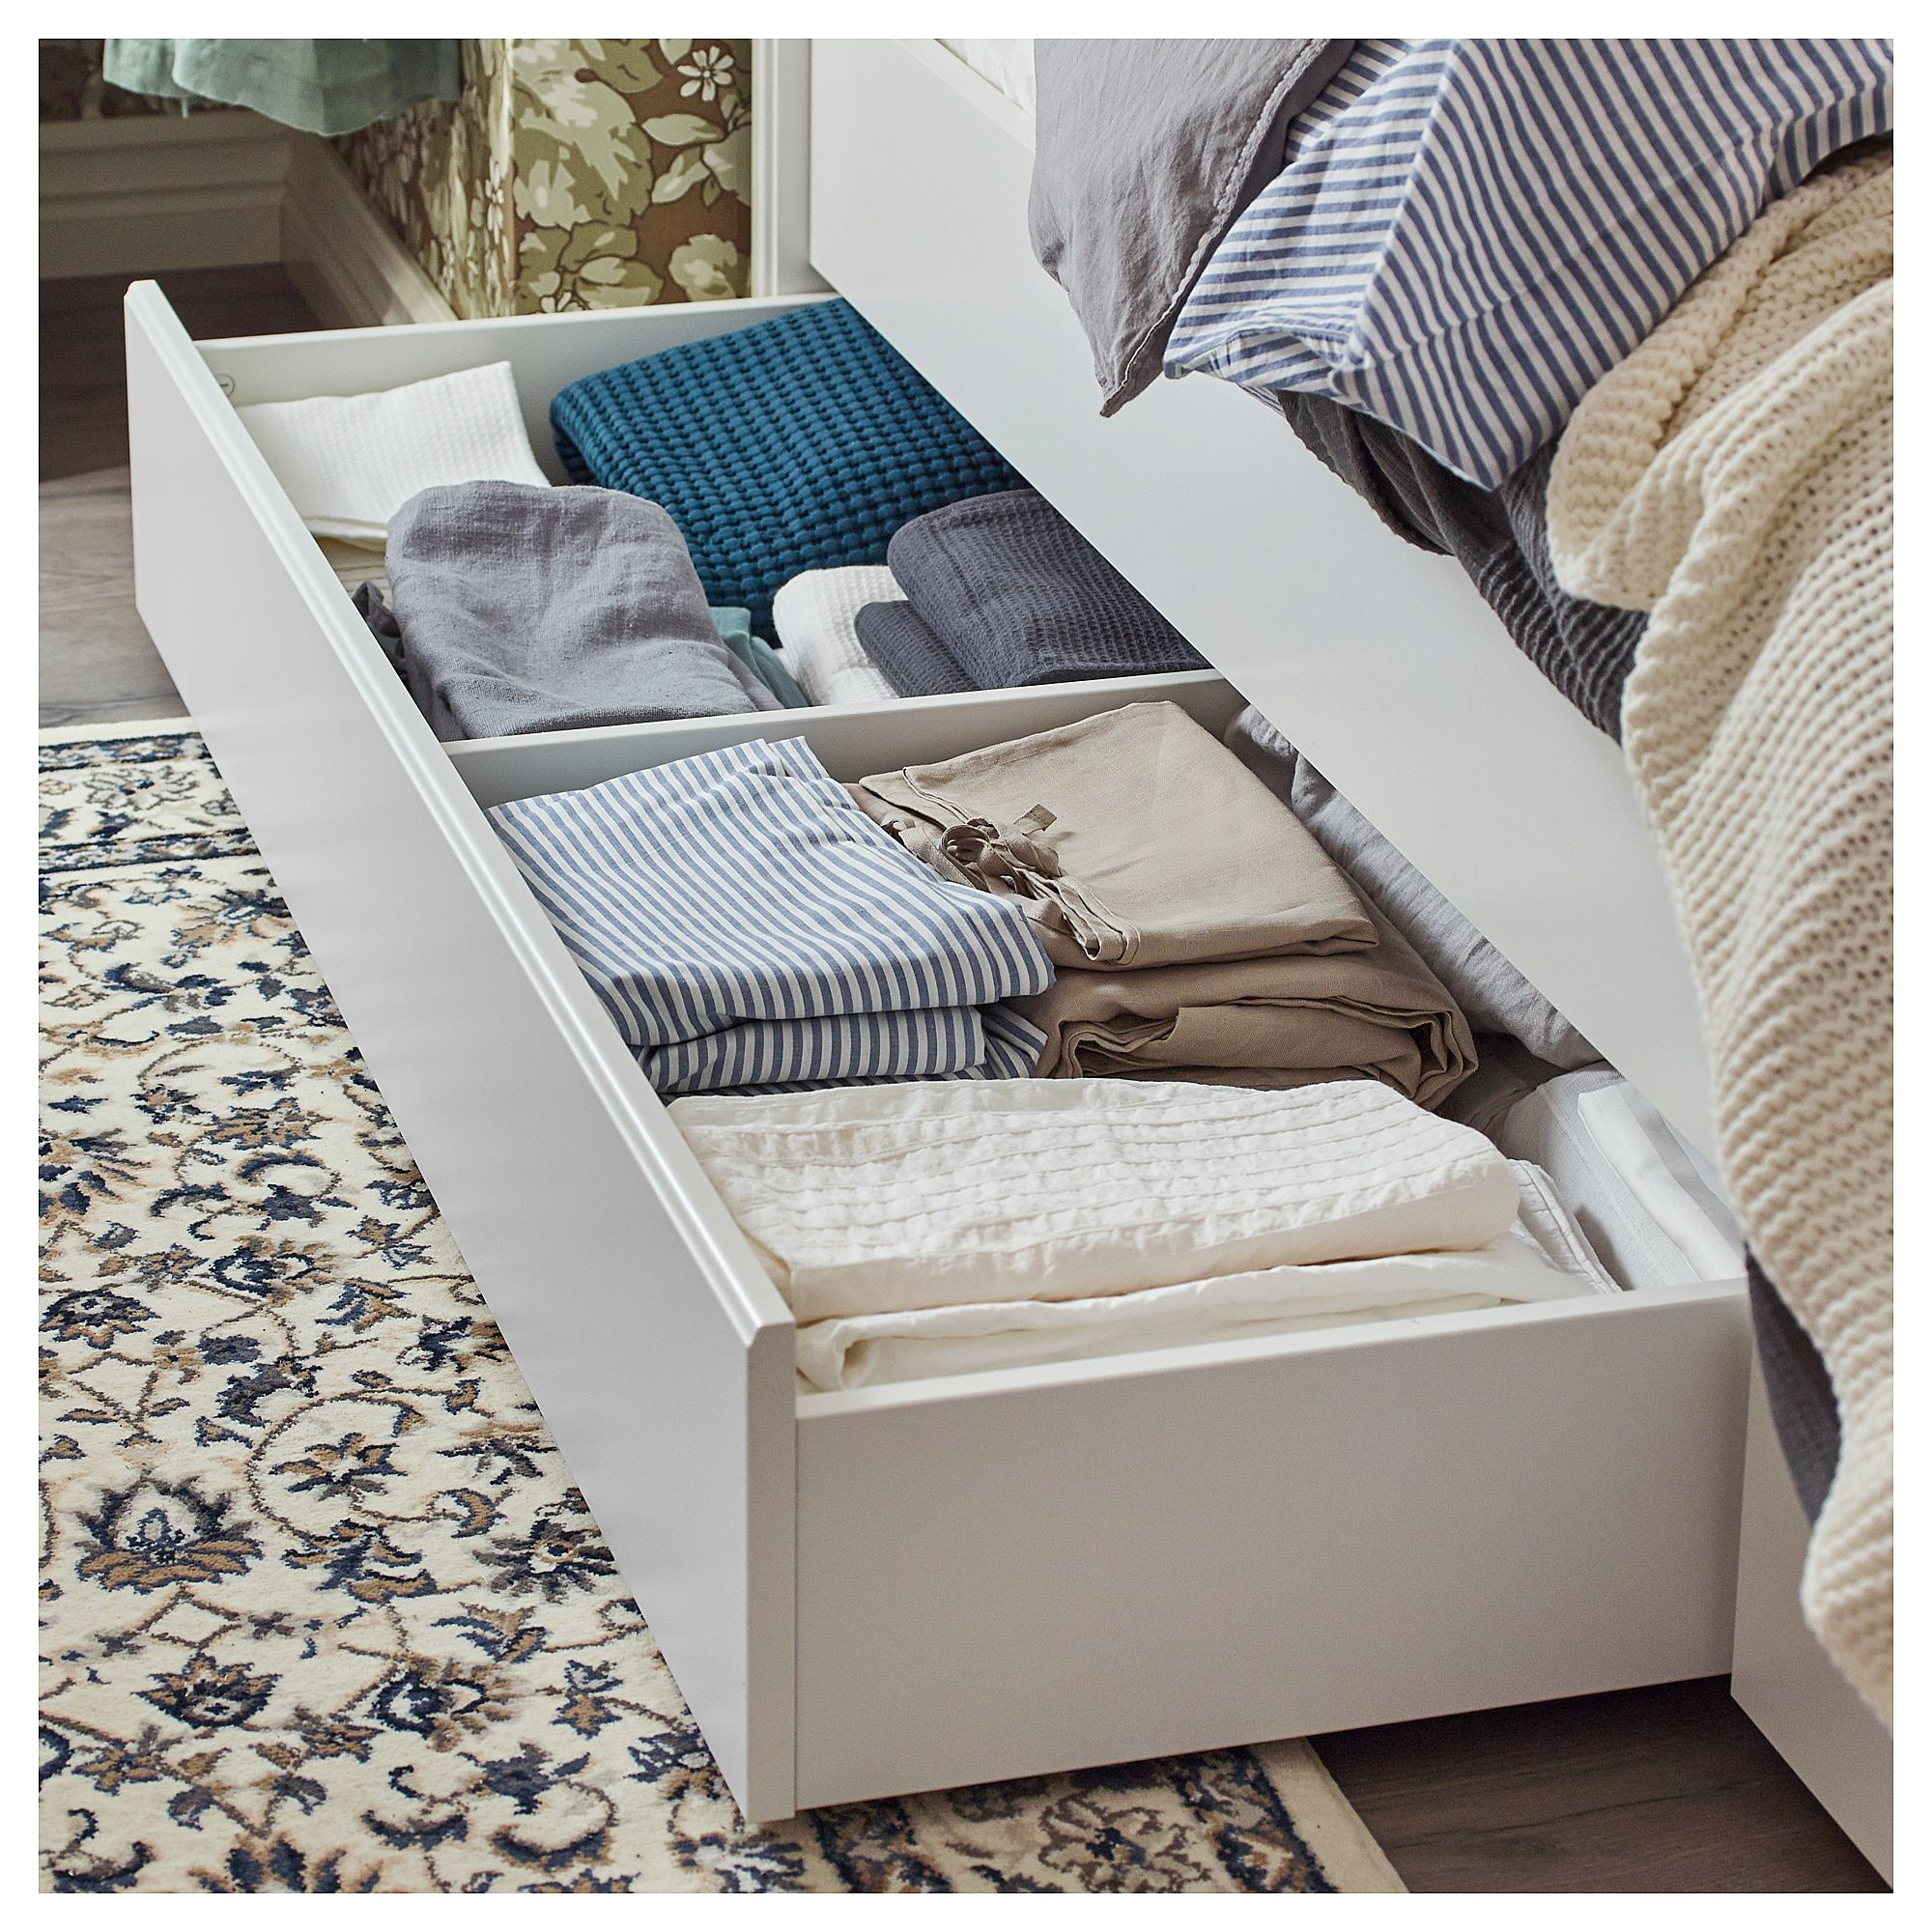 Songesand Bed Frame With 2 Storage Boxes Brown Full Double Bed